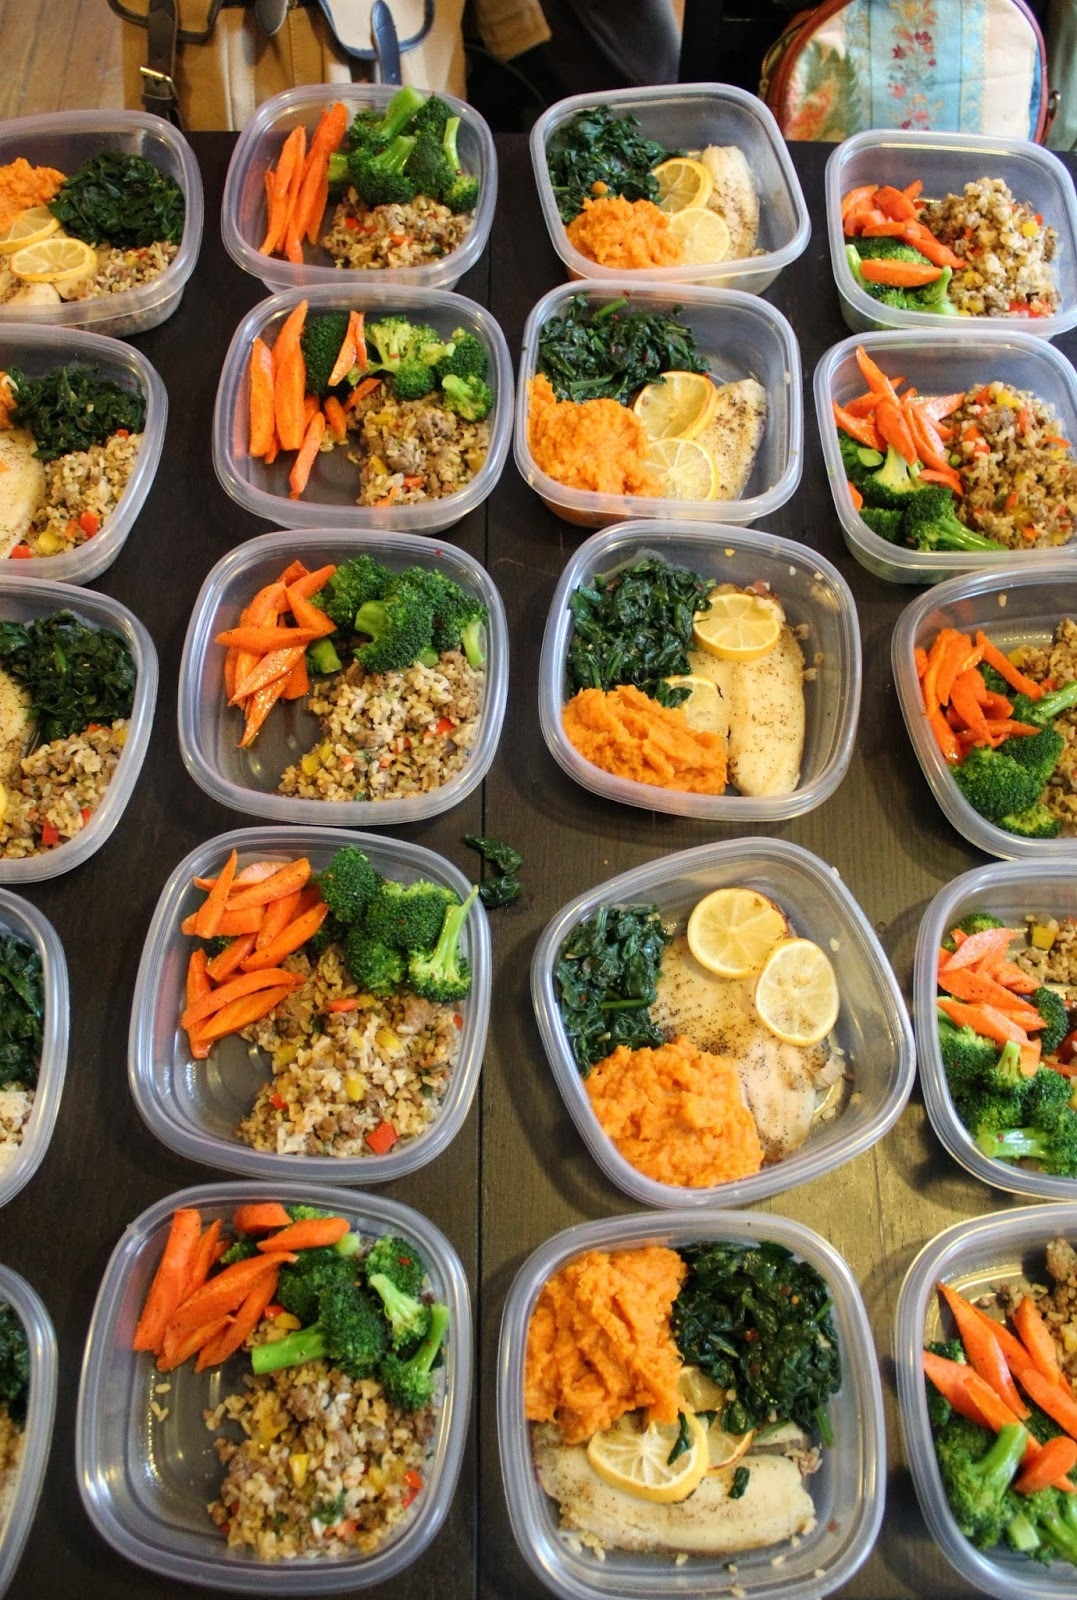 Healthy Homemade Dinners  Healthy Meal Prep Ideas For The WeekWritings and Papers